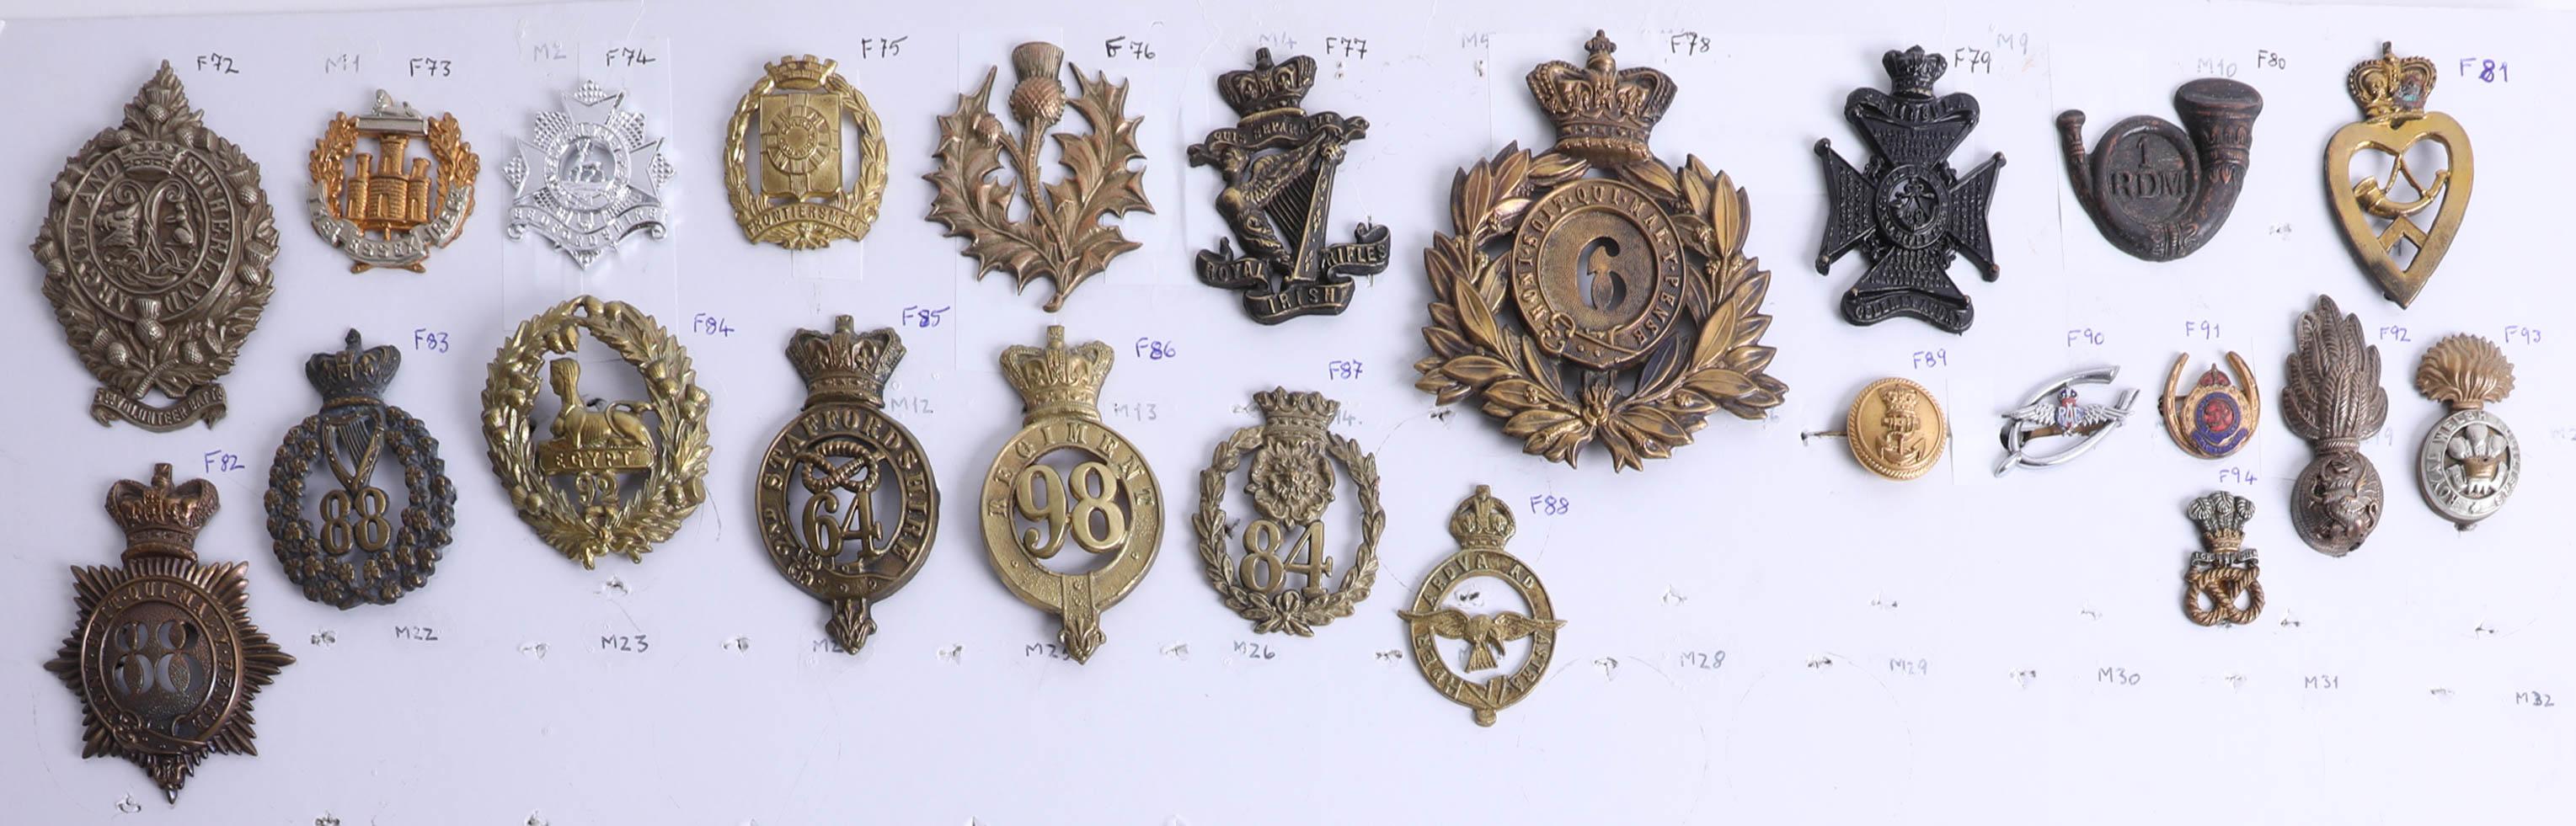 Lot 006 - A collection of approx. 94 military cap badges displayed on two sheets, including an 1860 shako star